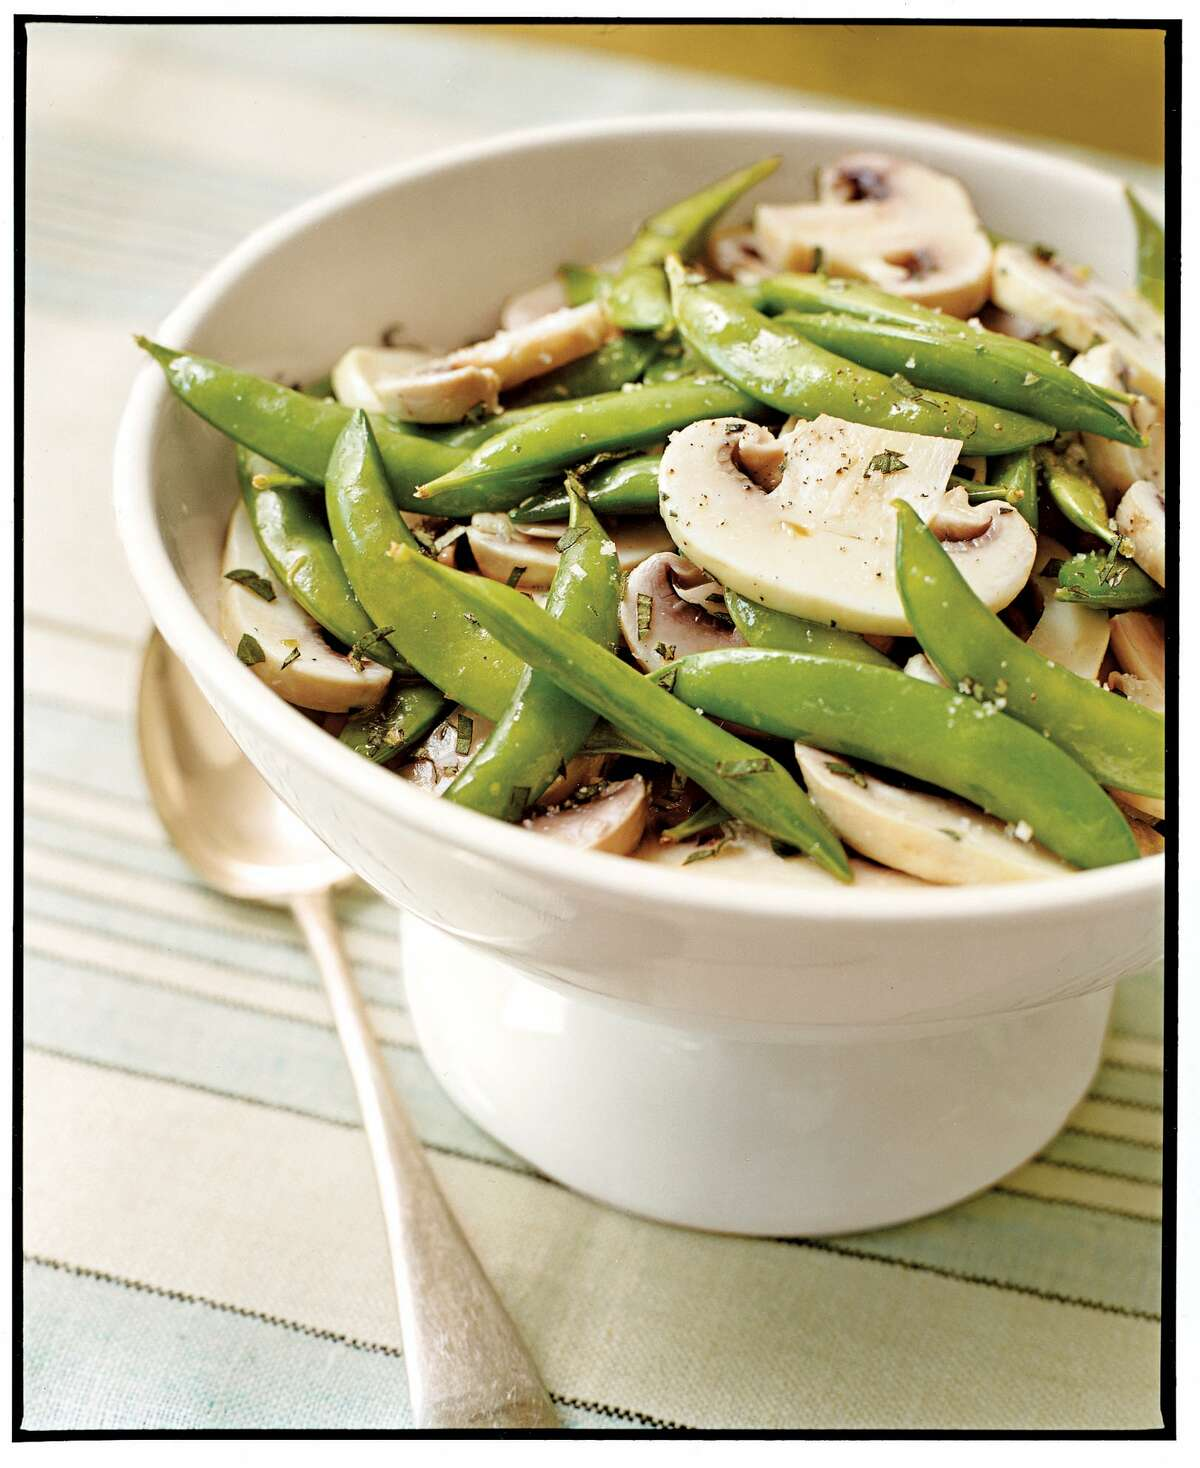 Country Living recipe for Snap Pea and Marinated Mushroom Salad.